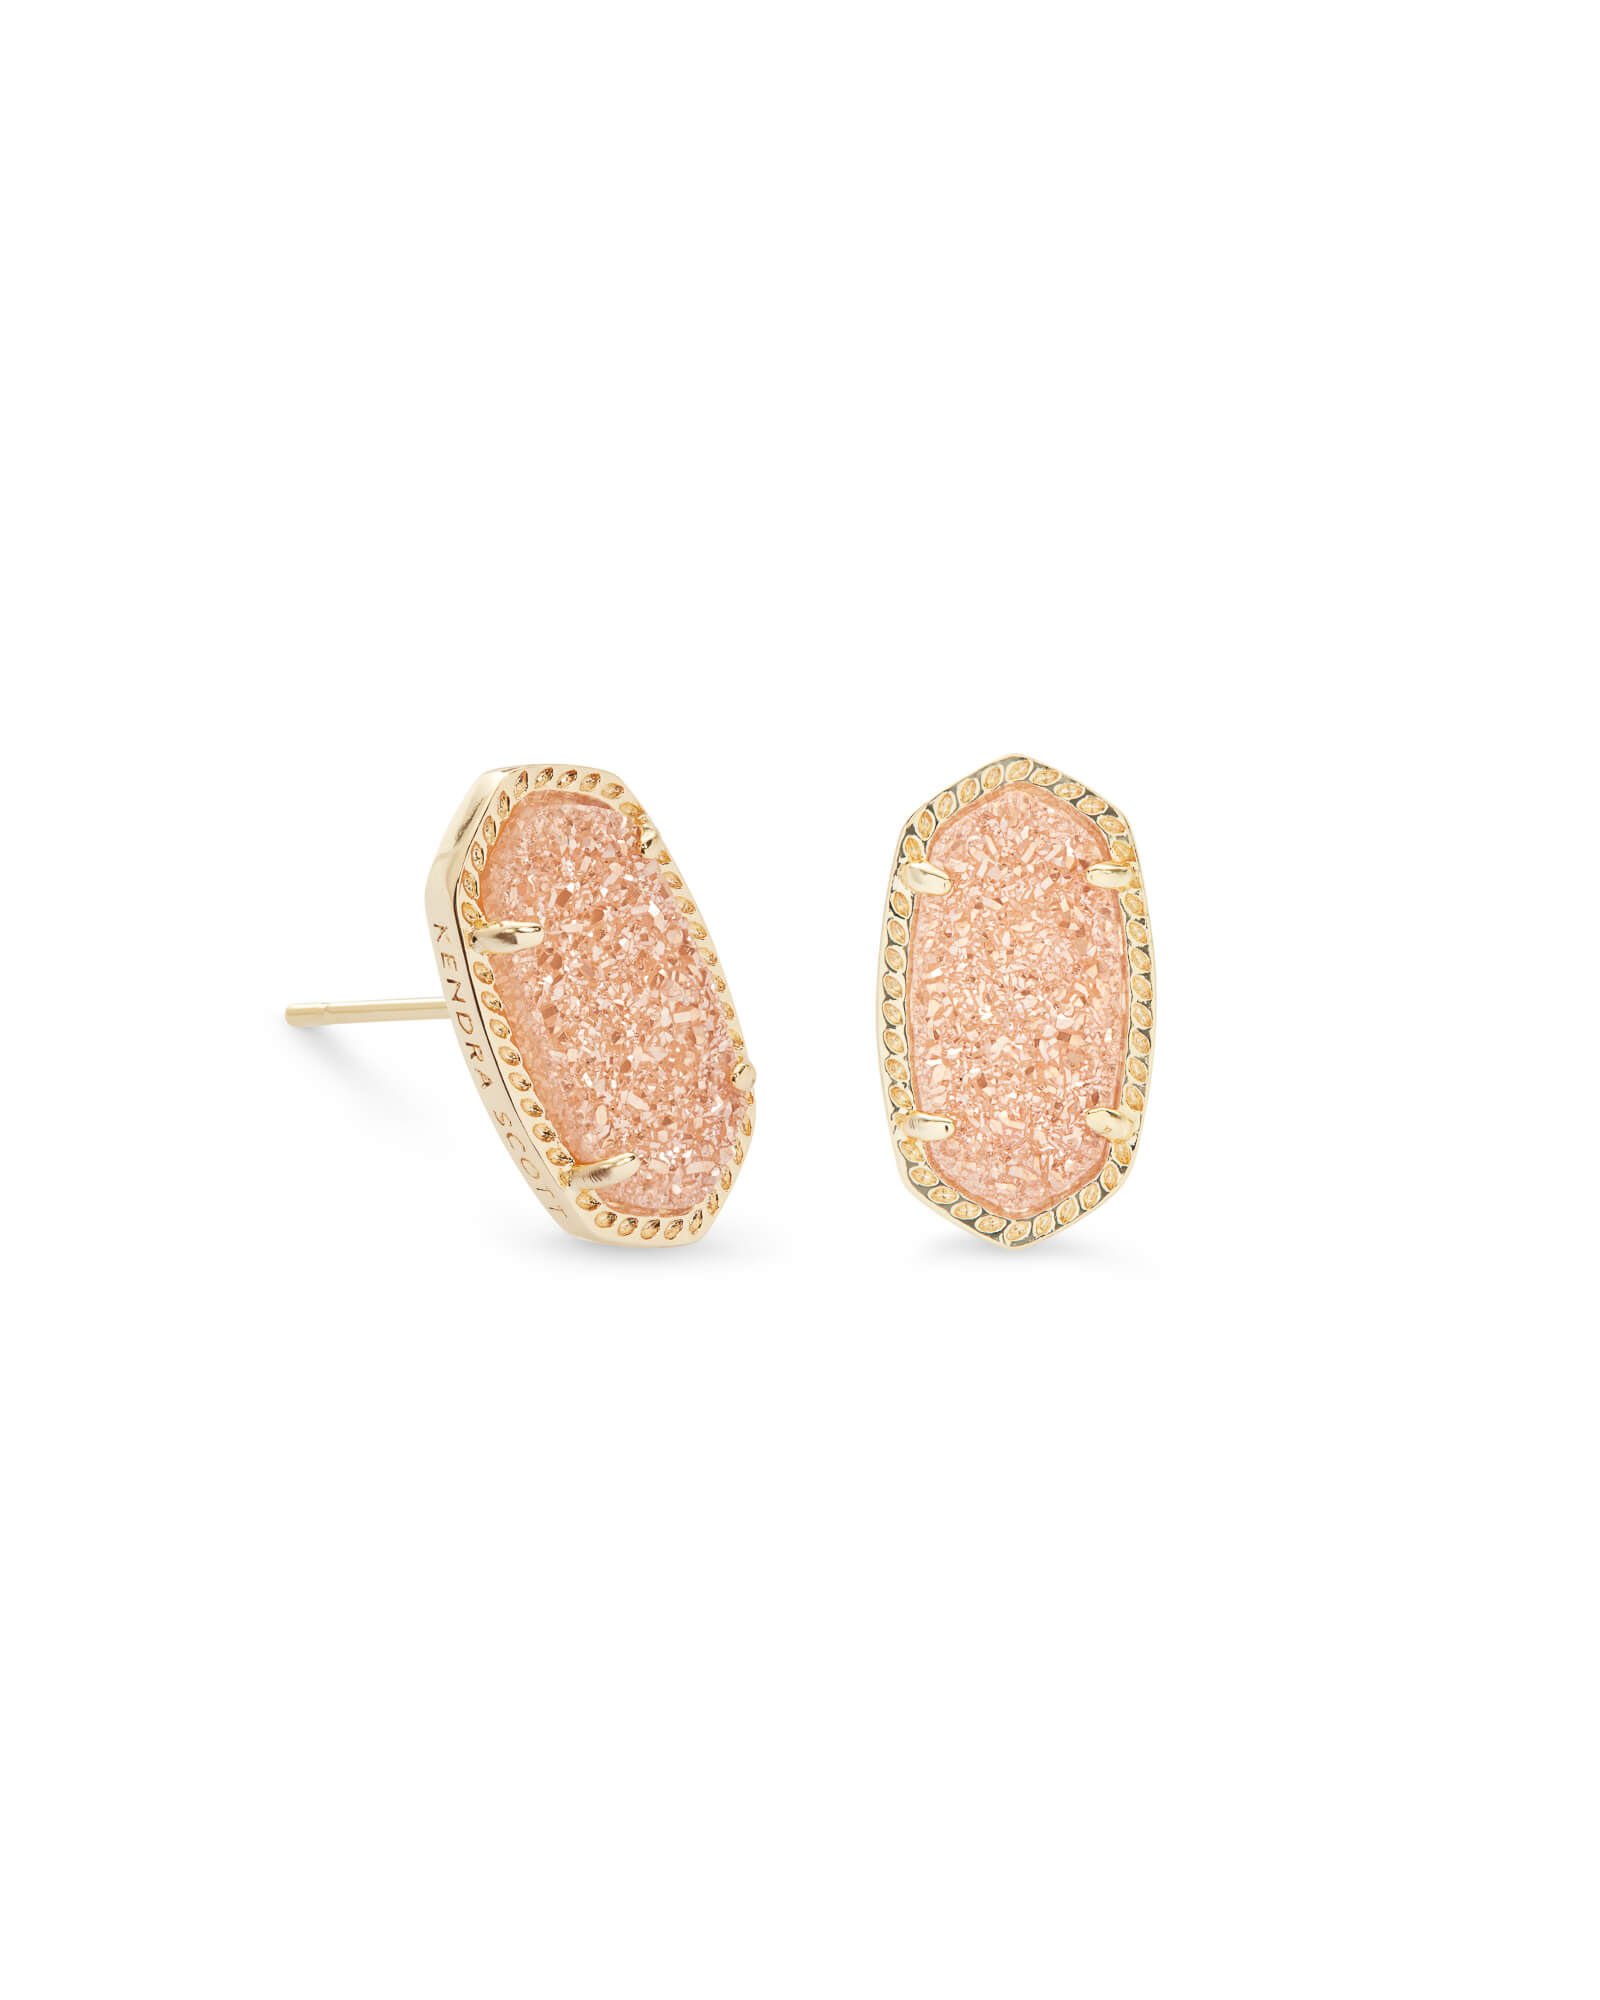 Ellie Gold Stud Earrings in Sand Drusy